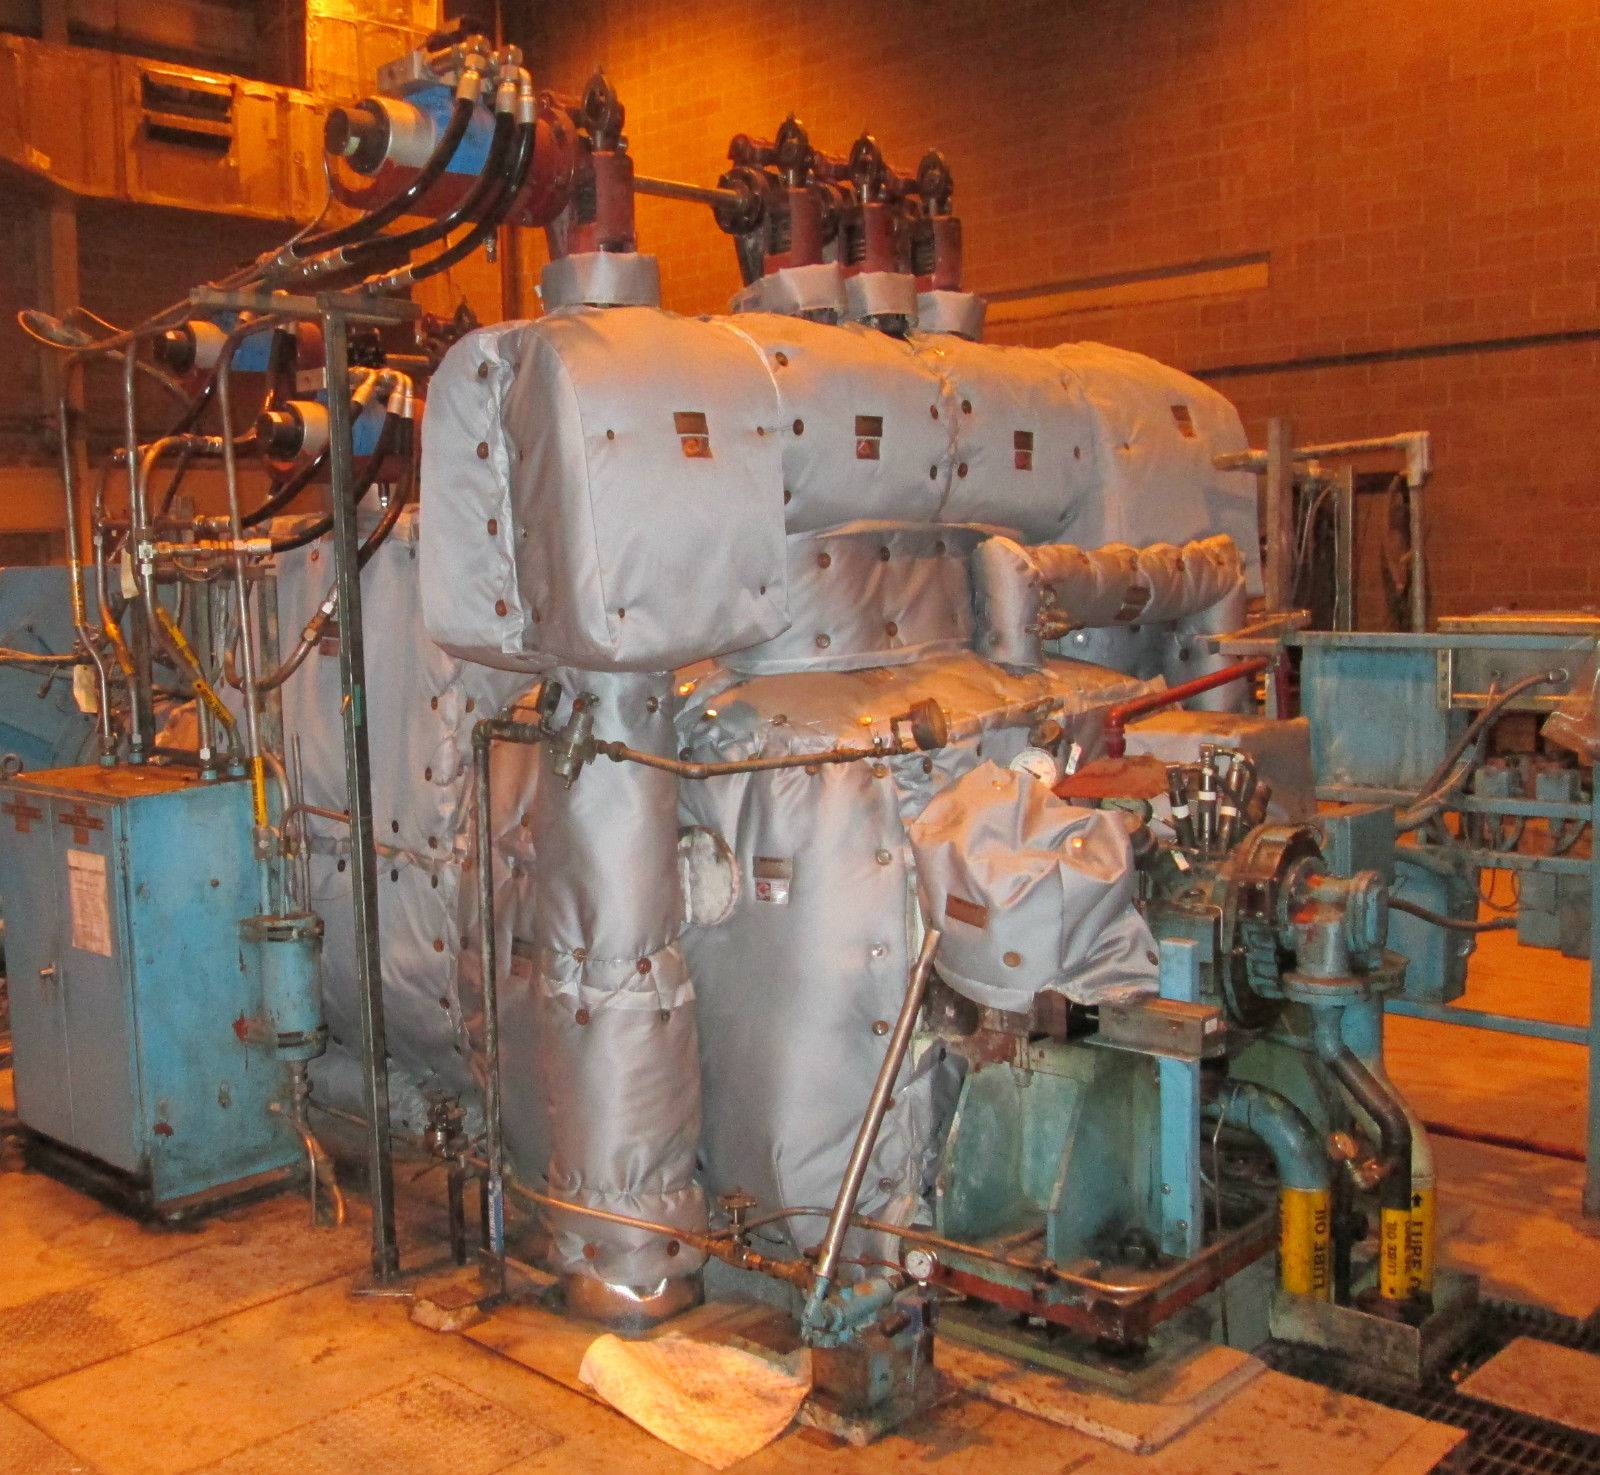 kW BBC 13 8 kV 1450 PSI 950°F Steam Turbine Generator